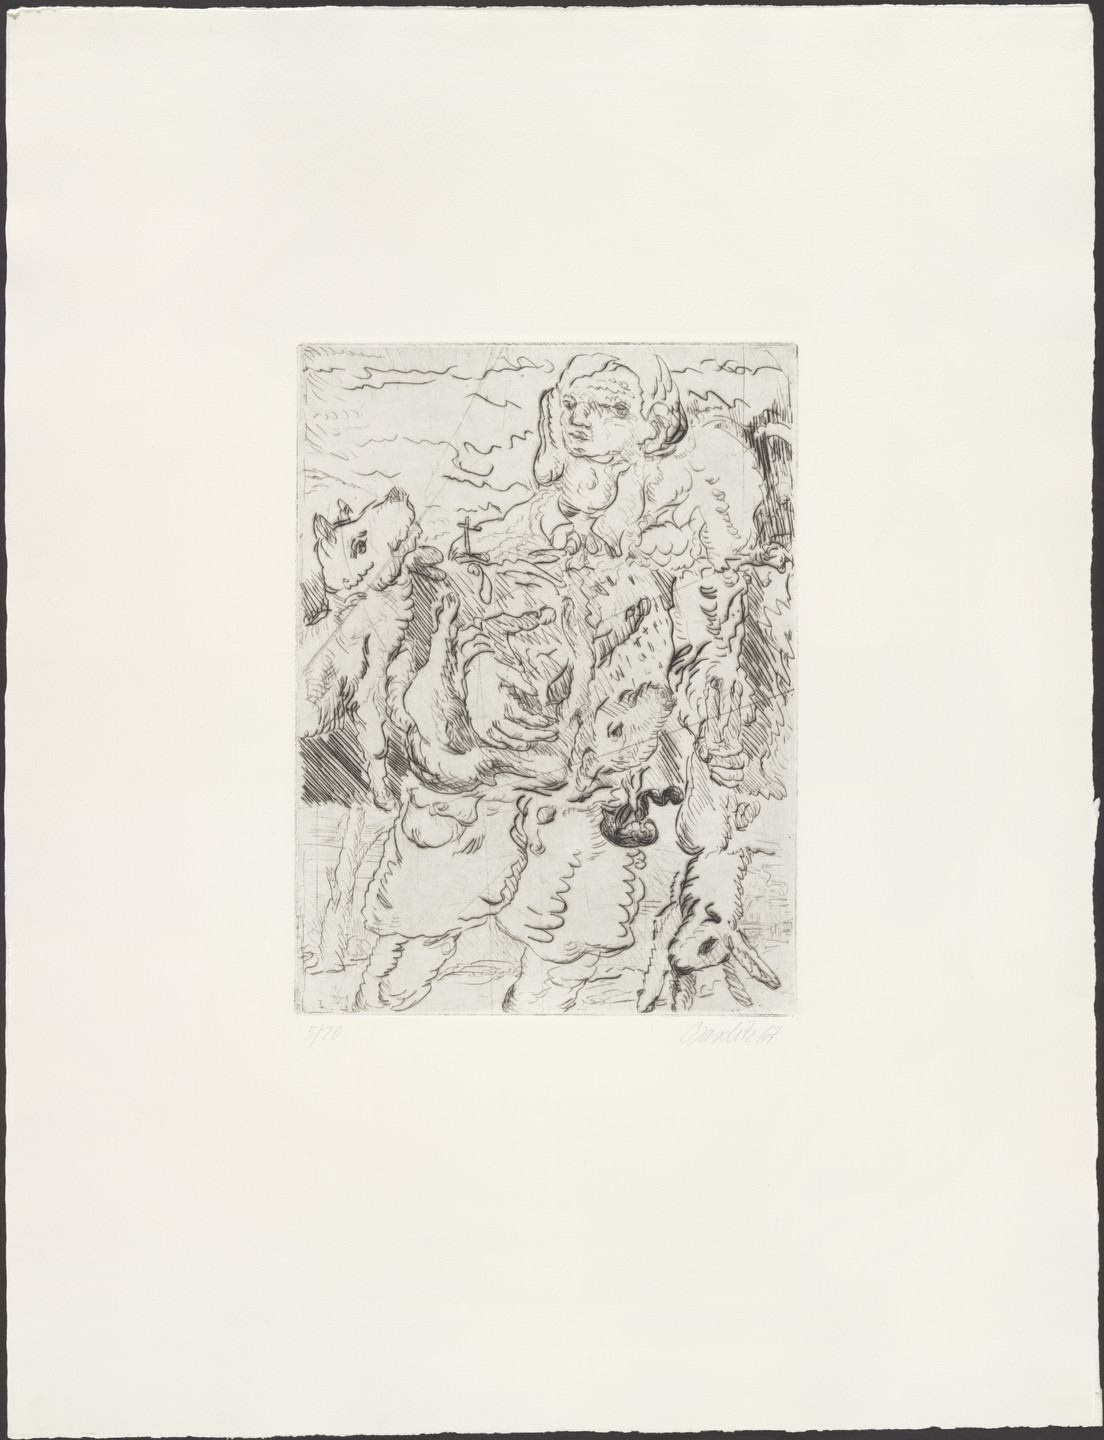 Georg Baselitz. The Hunter (Der Jäger). 1967, published 1974